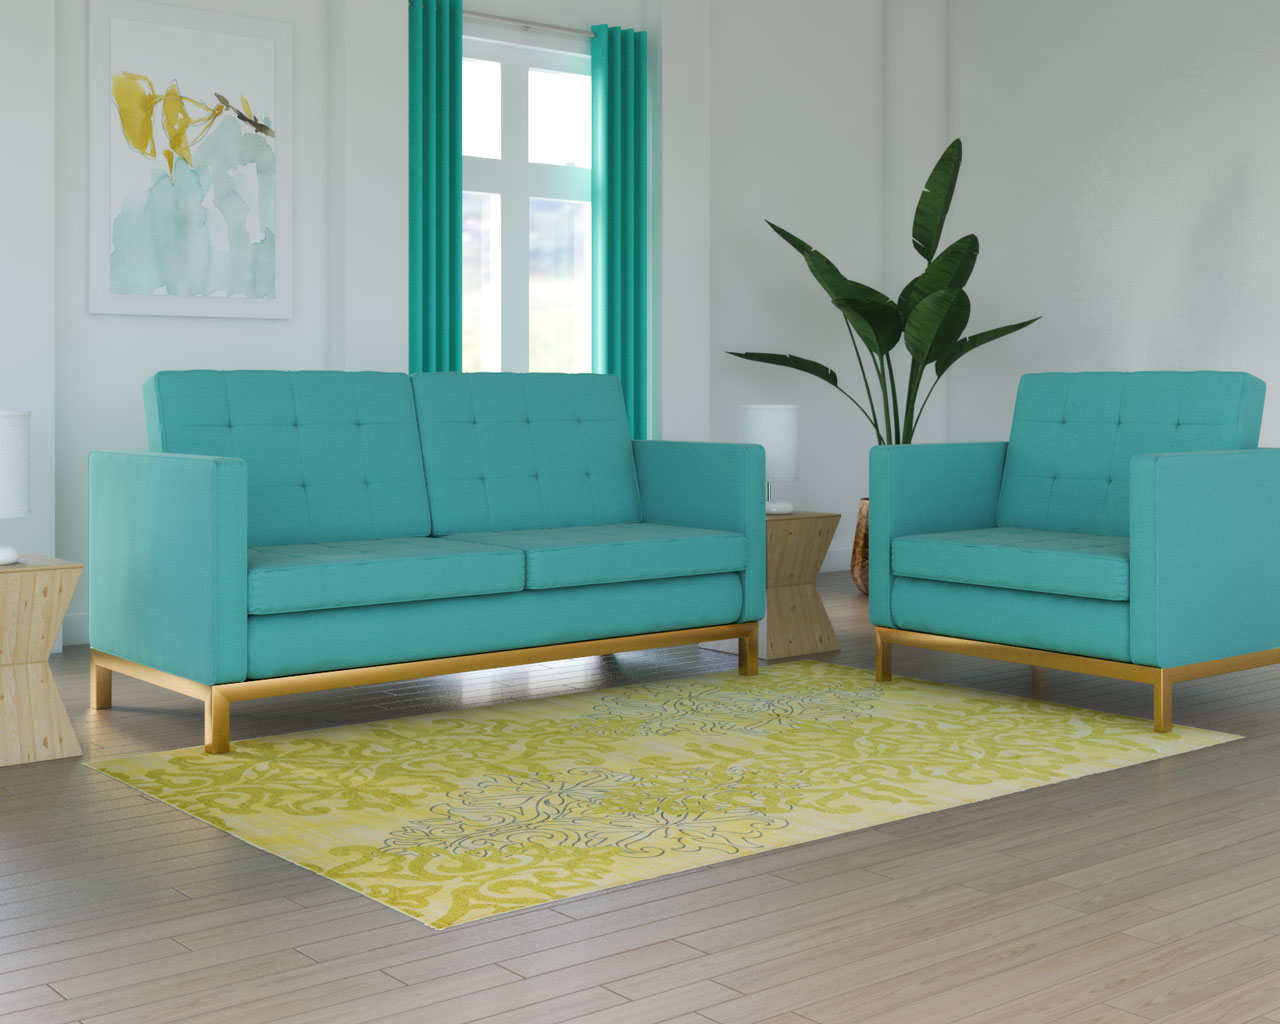 Pale yellow rug with teal sofa